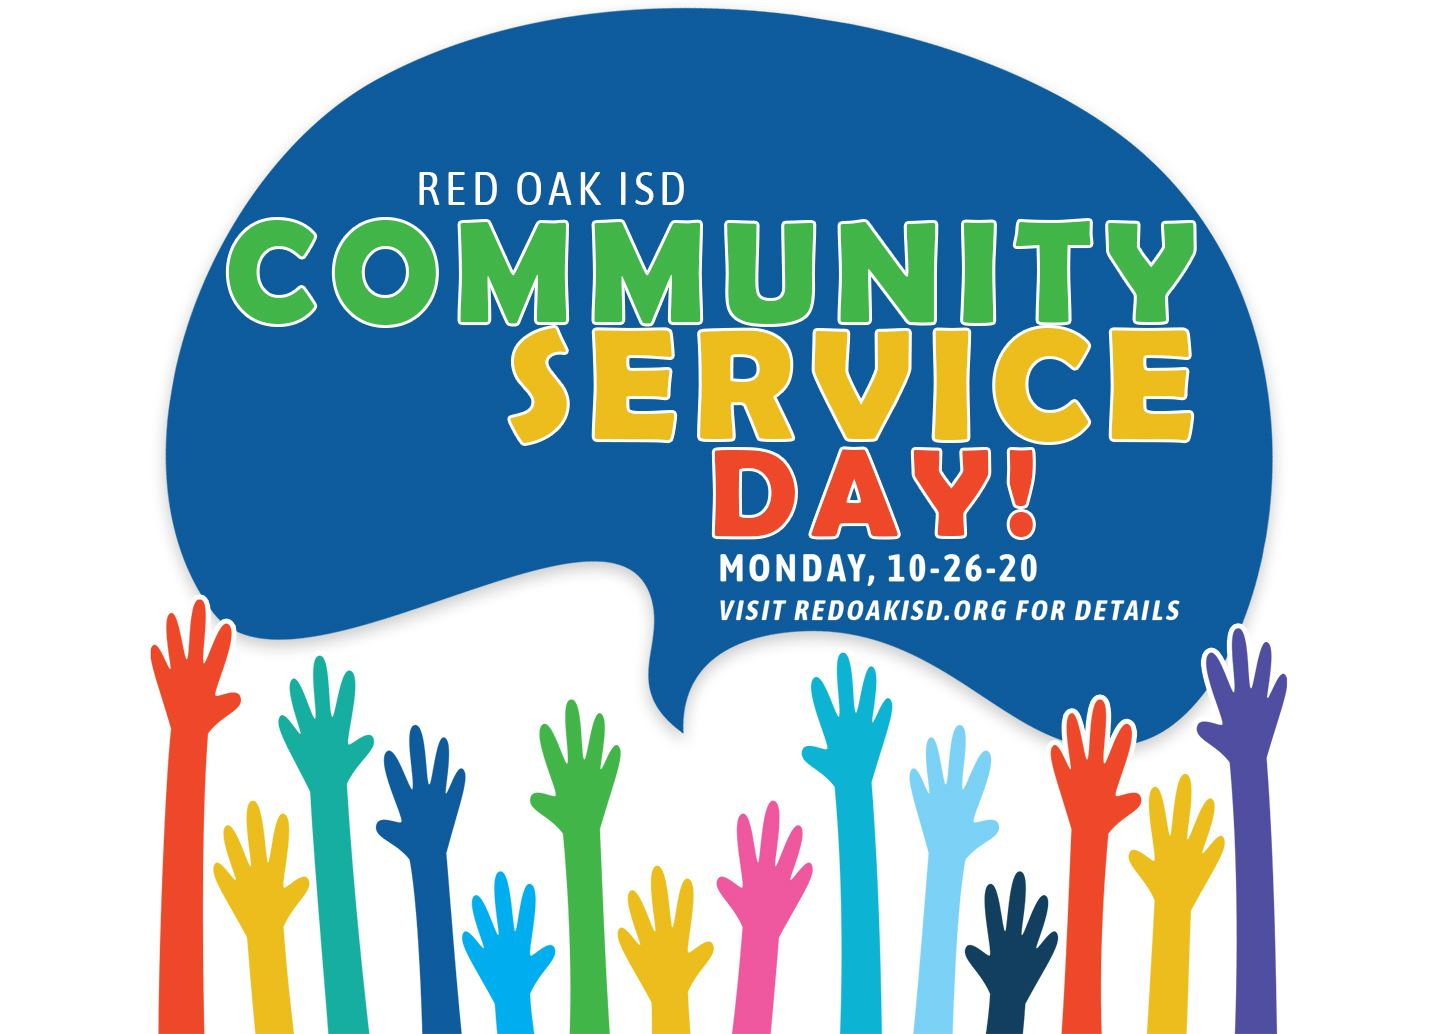 ROISD Community Service Day on Oct. 26, 2020